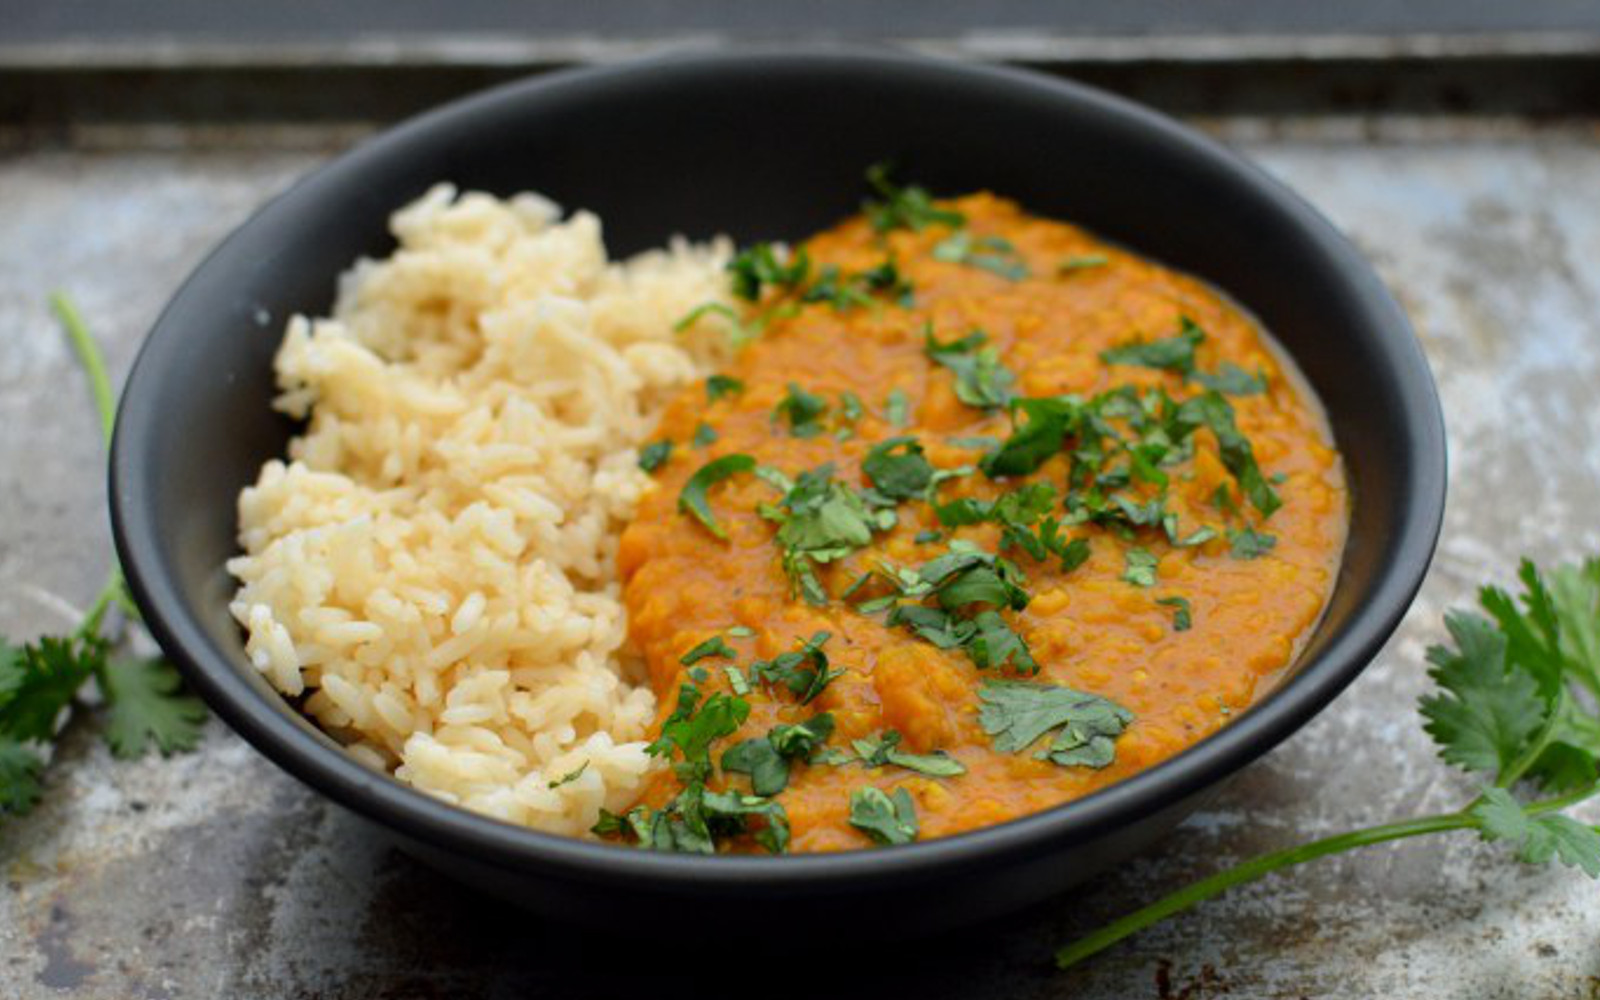 Vegan Gluten-Free Red Lentil Coconut Curry with side of rice